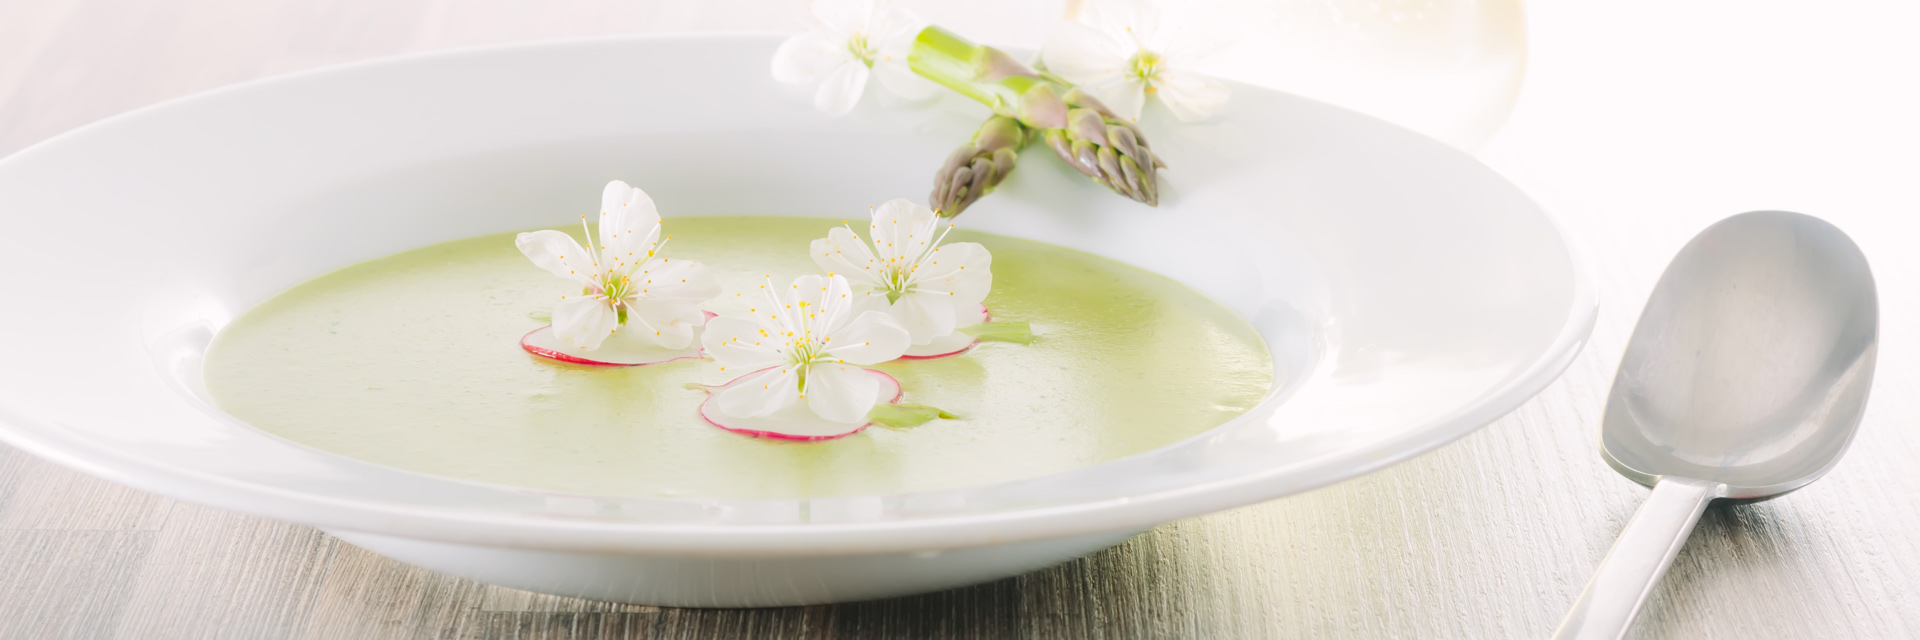 Asparagus Soup may seem a little indulgent but this cream of asparagus soup is a beautifully spring like dish with a surprising and tasty garnish.